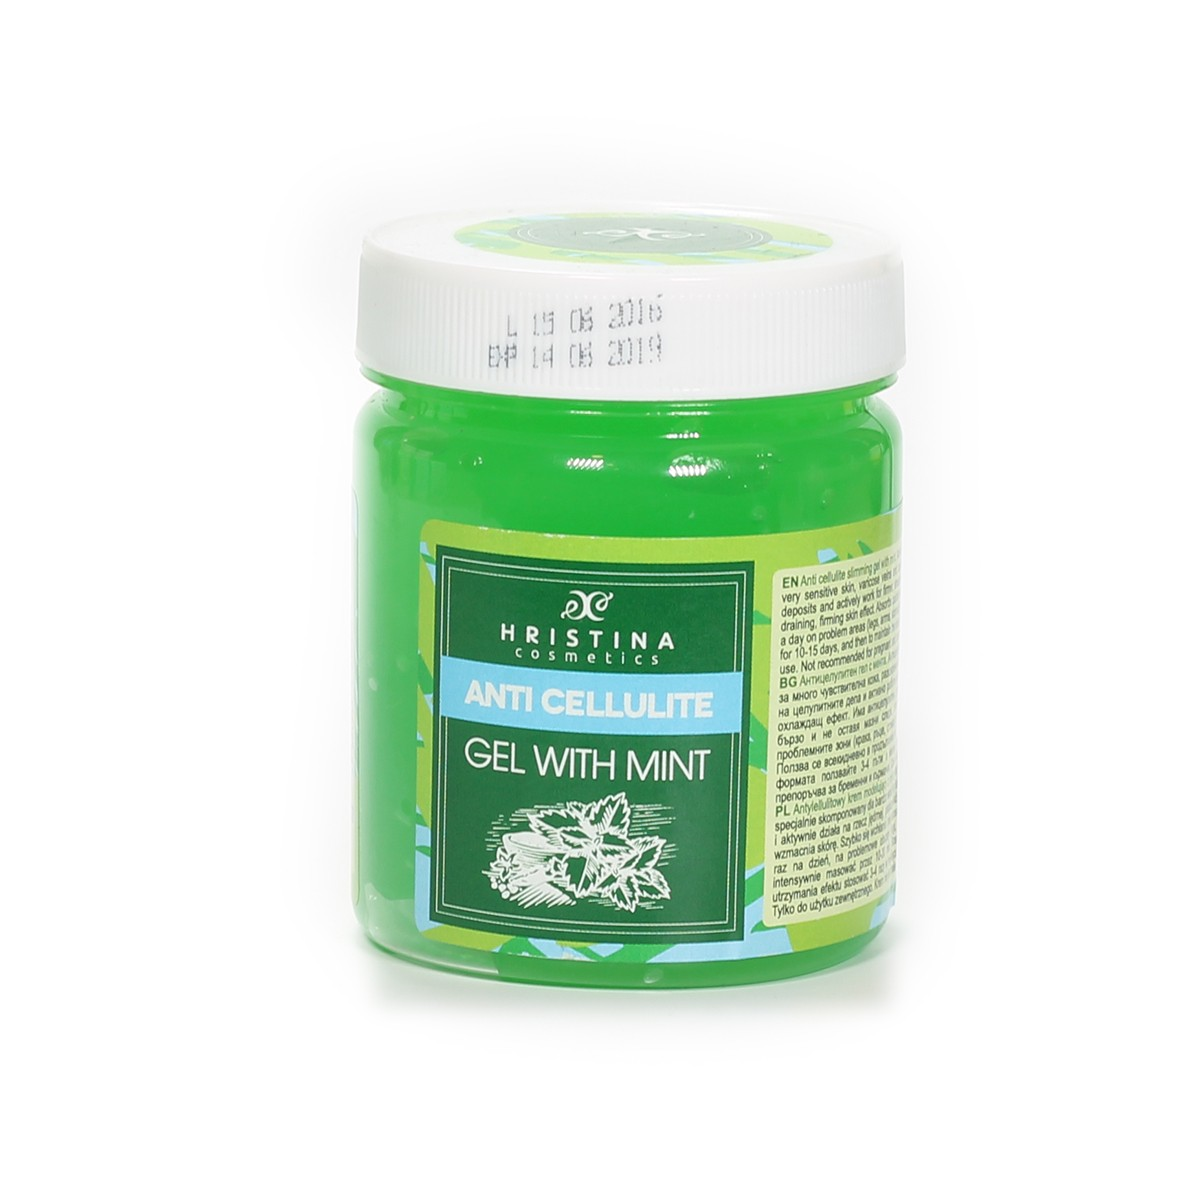 Anti-cellulite gel with mint by Hristina